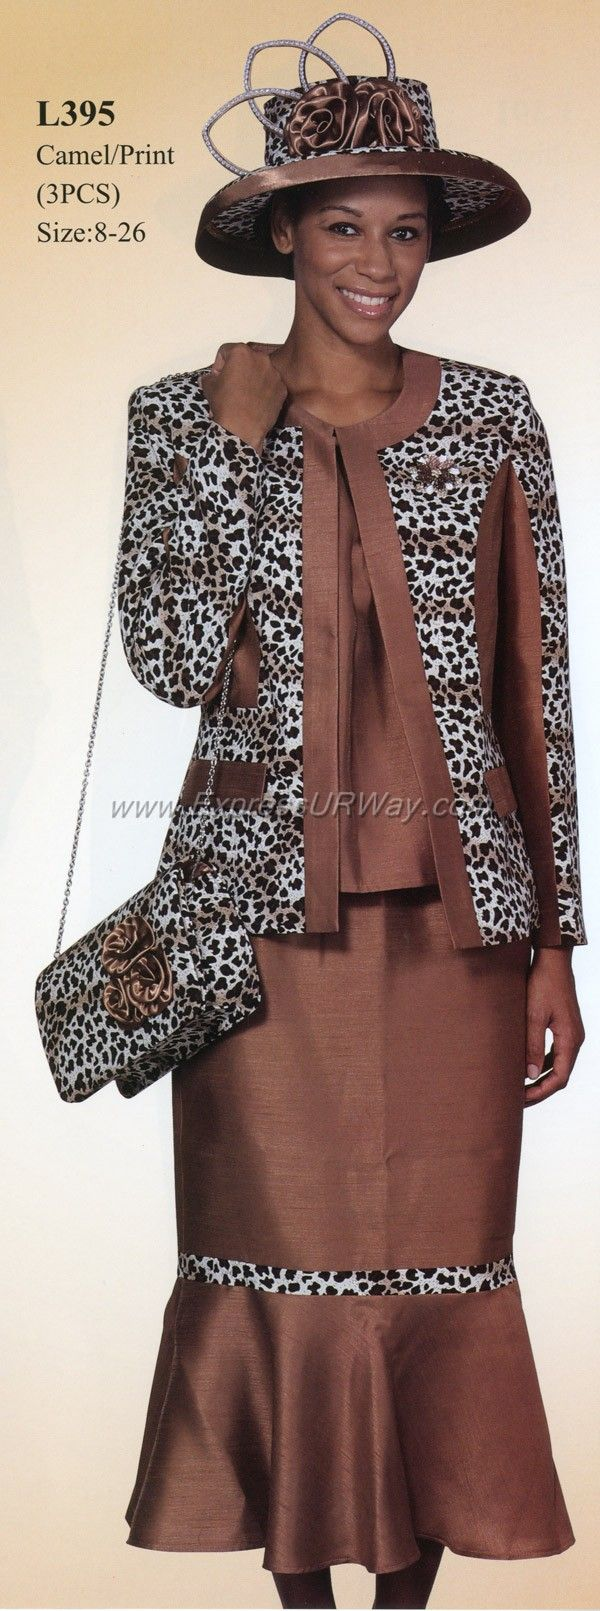 Womens Suits by Lyndas of New York - www.ExpressURWay.com - Womens Church Suits, Church Suits for Women, Ladies Suits, Skirt Suits